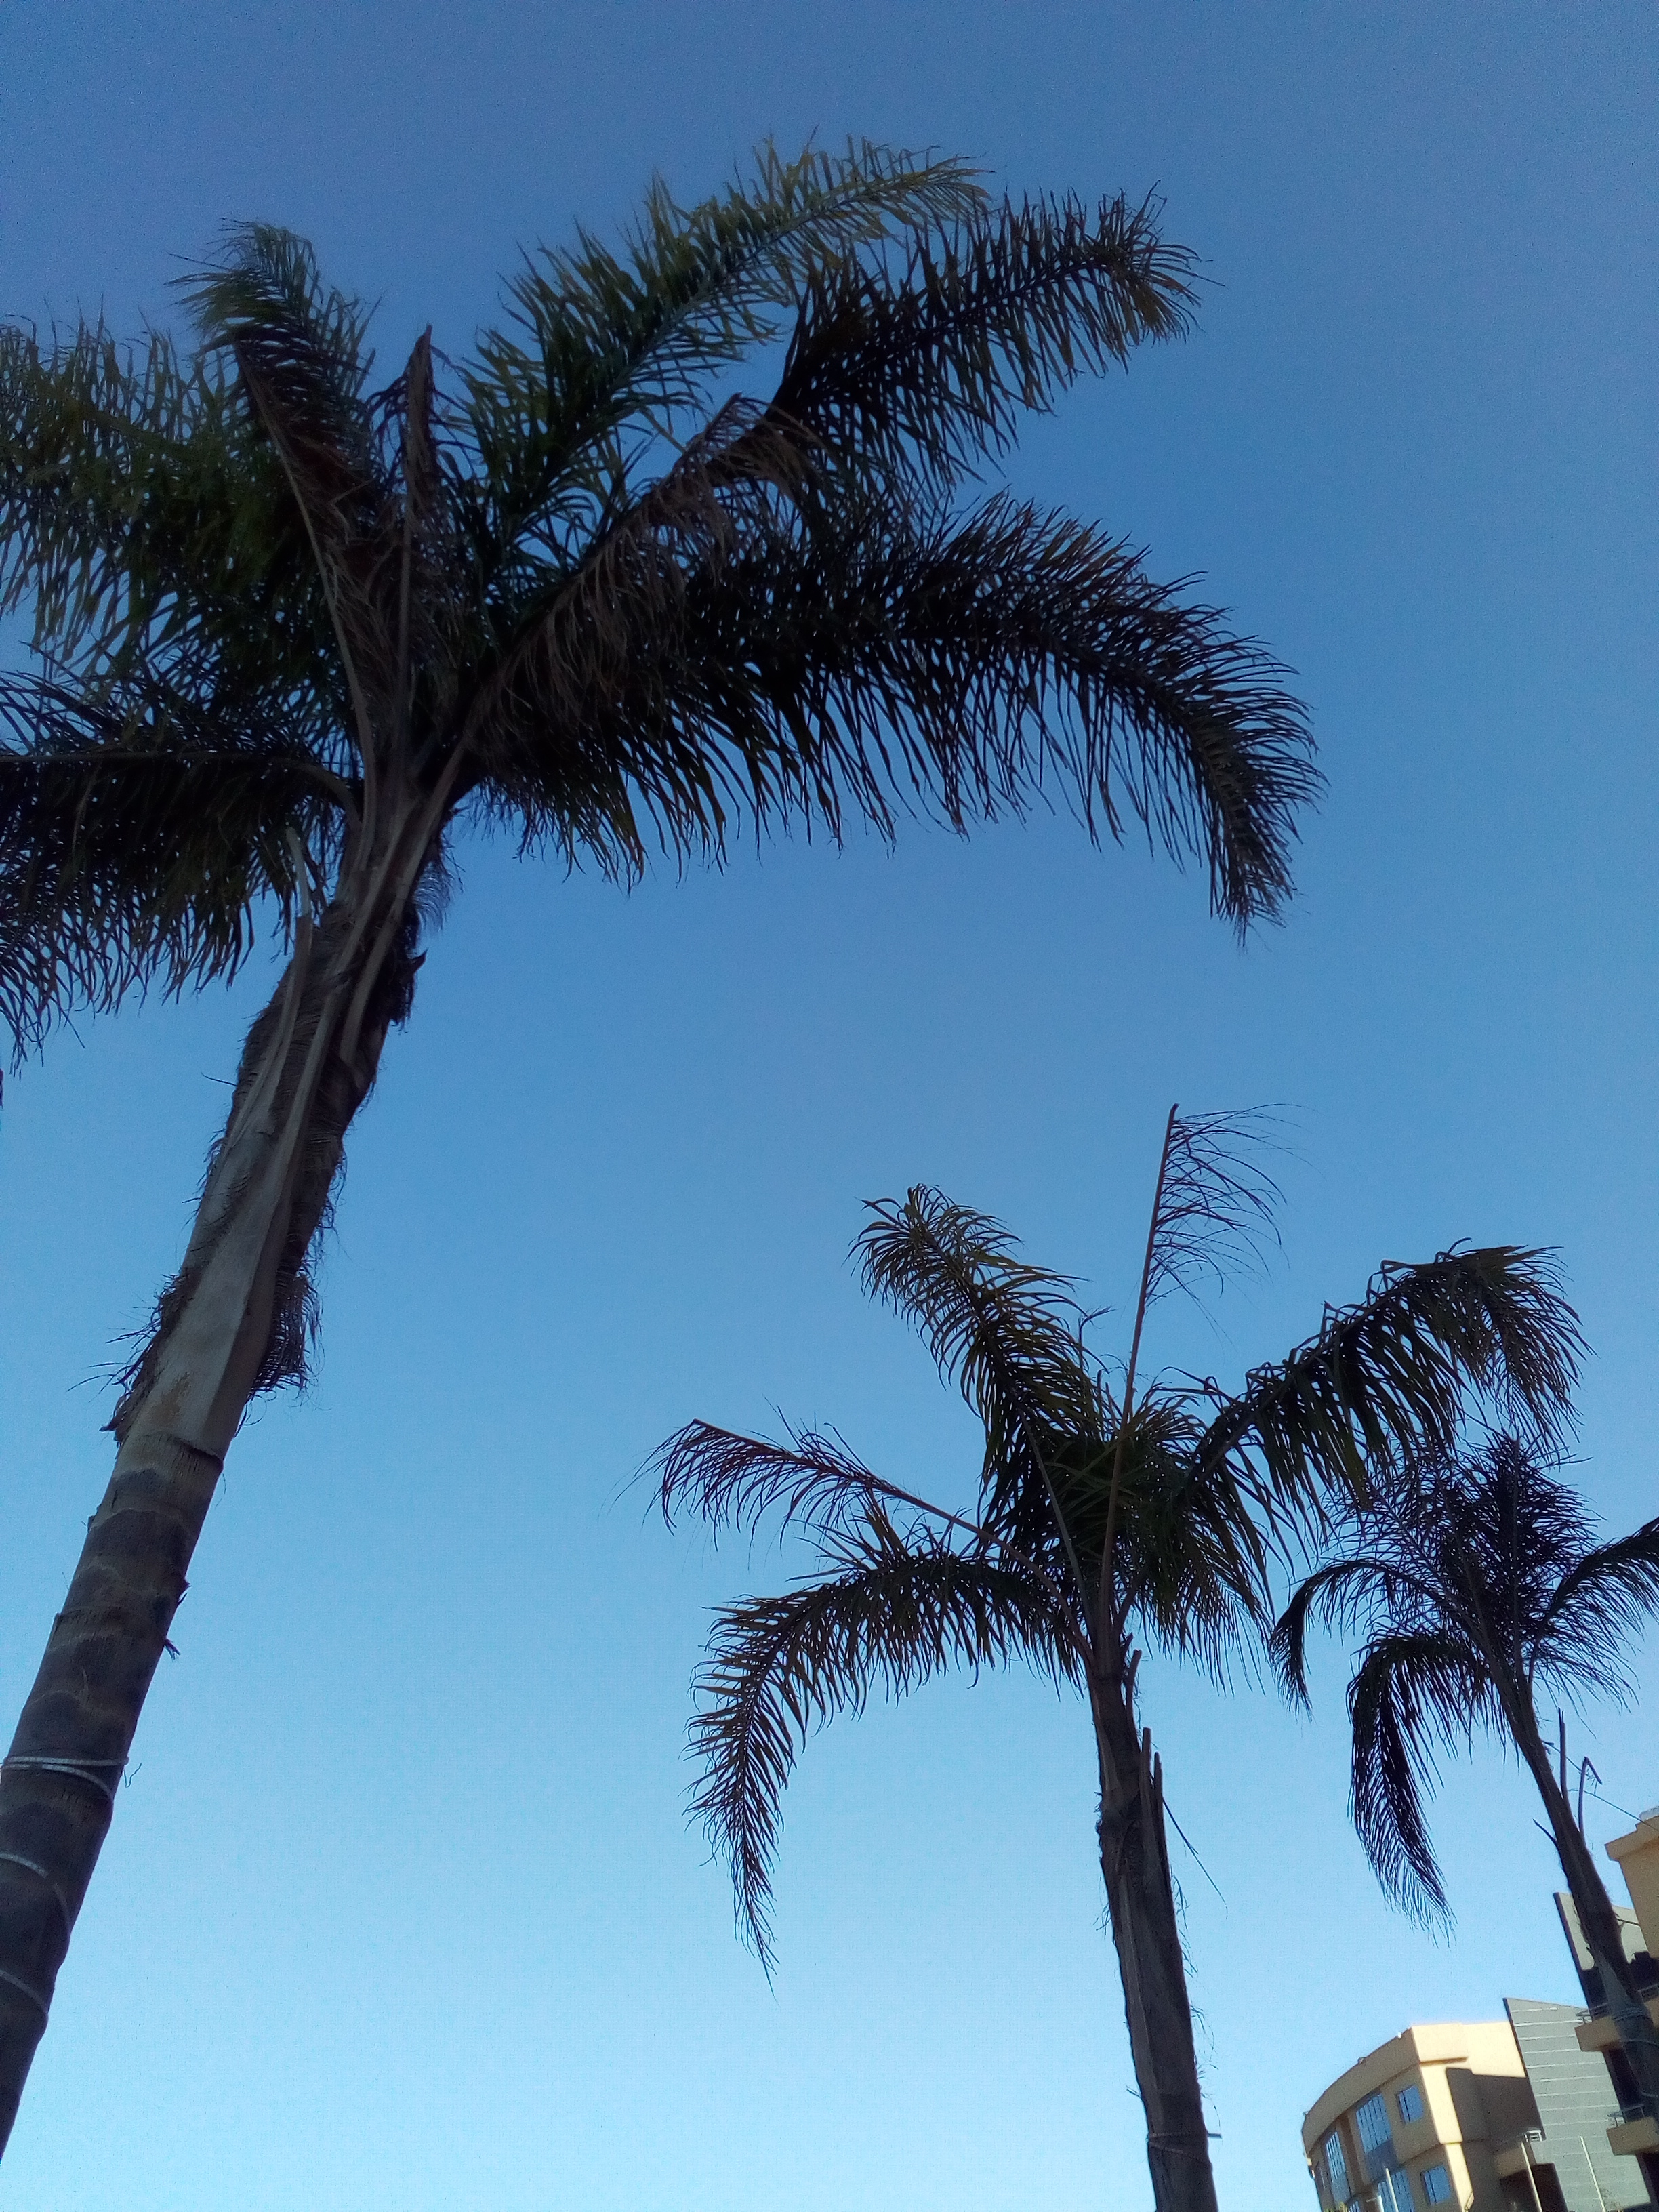 Palm trees reaching the sky